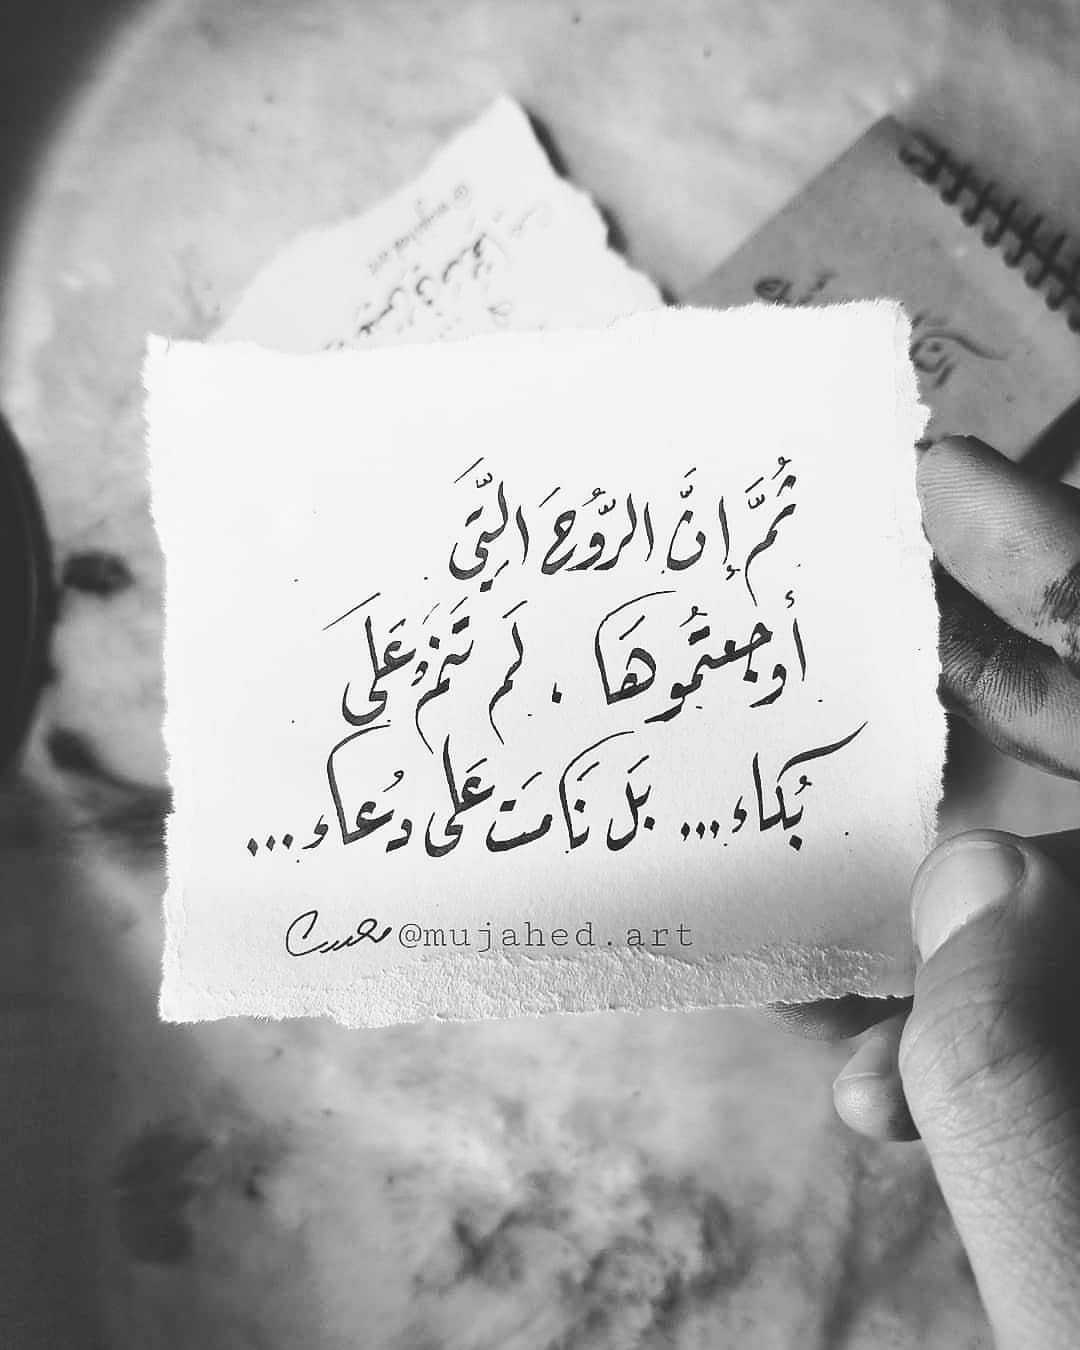 Pin By Abeer Al Shaikh On حكم In 2020 Mixed Feelings Quotes Islamic Quotes Wallpaper Cool Words